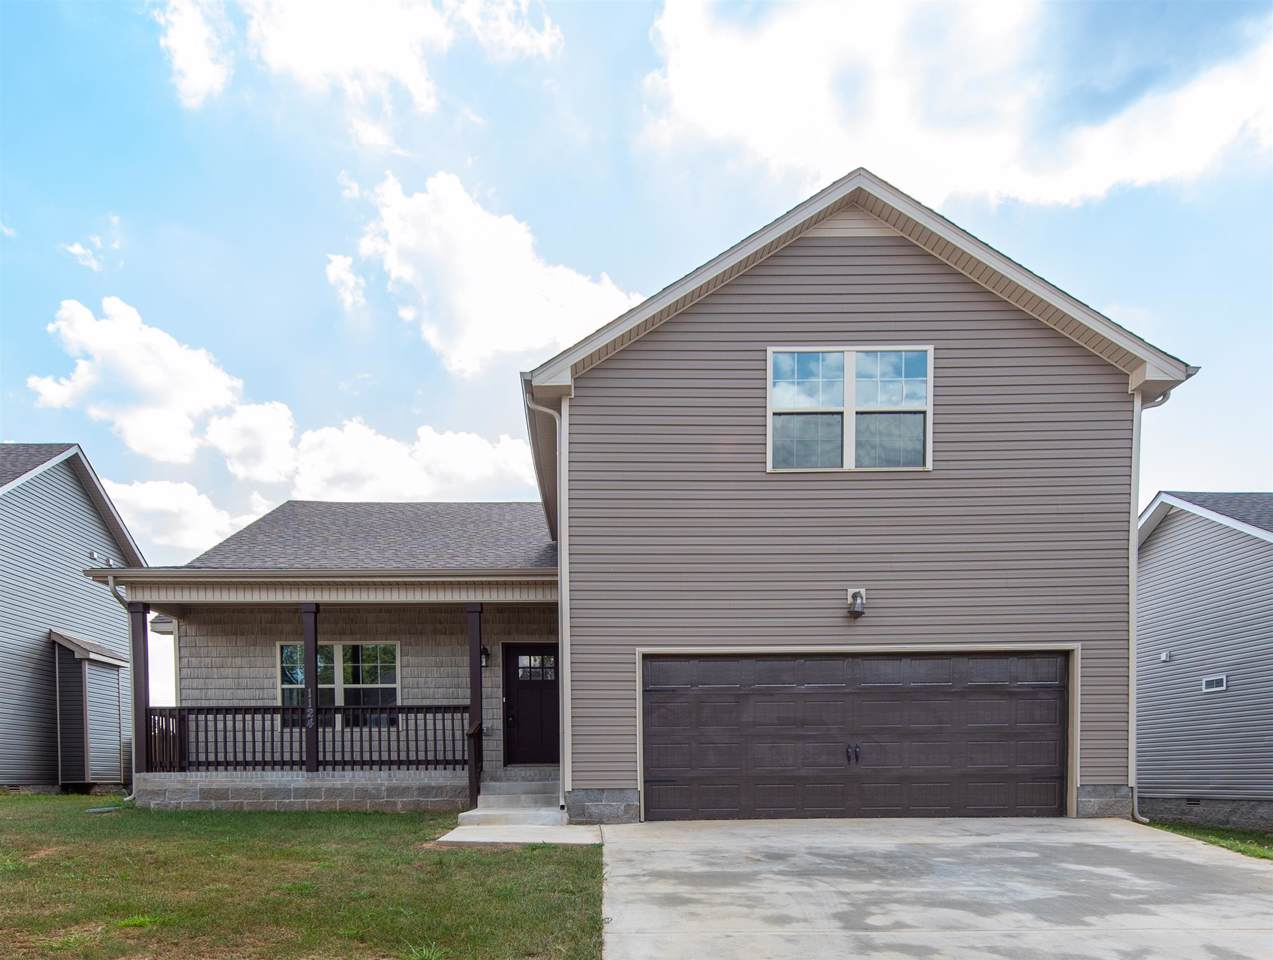 241 1124 Eagles View Dr - Photo 1